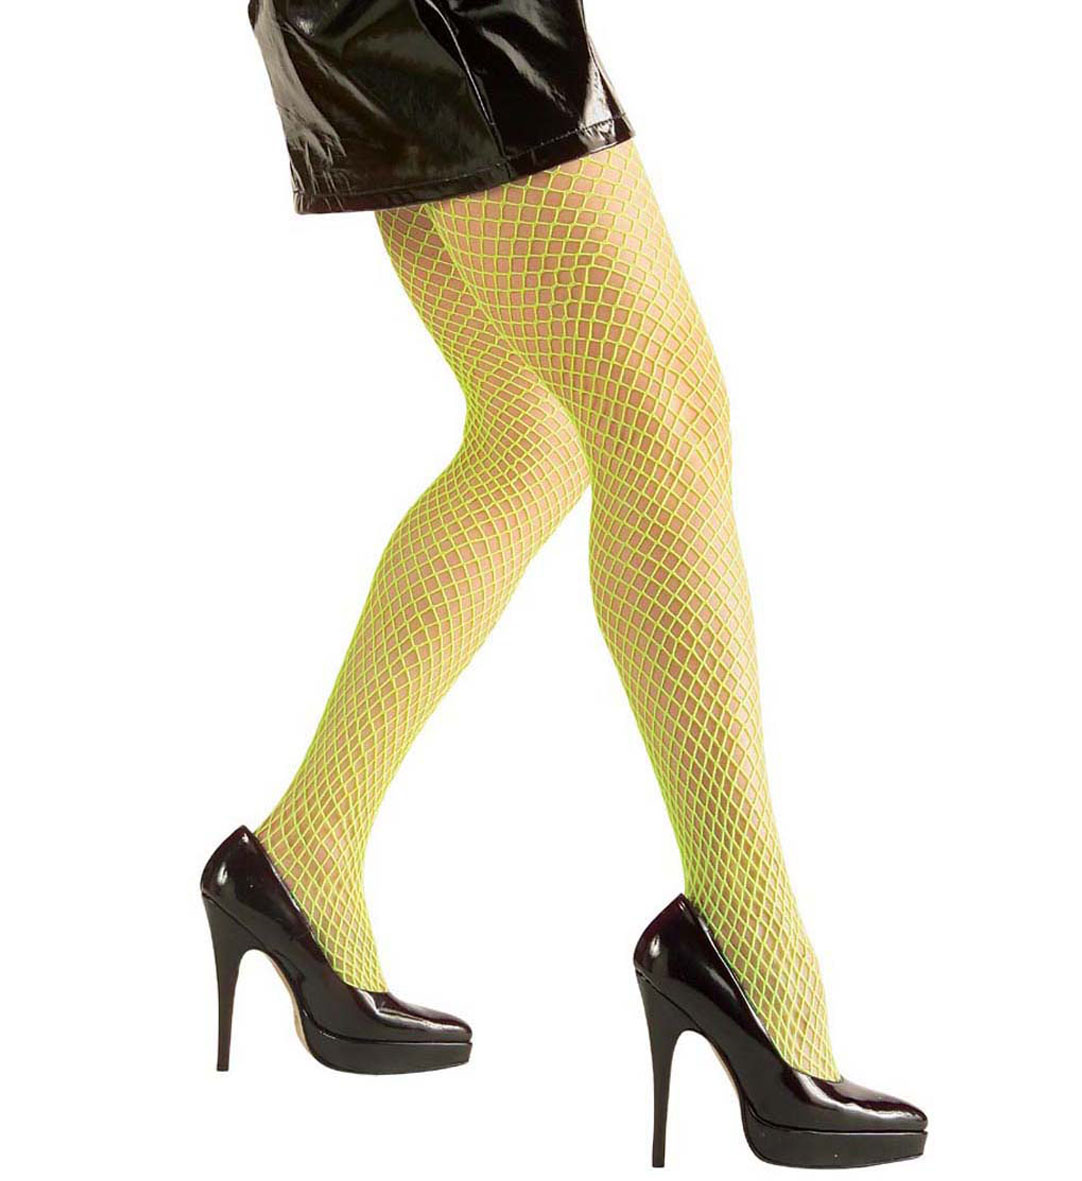 Pantyhose - Neon Wide - 4 Colours Stockings Tights Pantyhose Lingerie